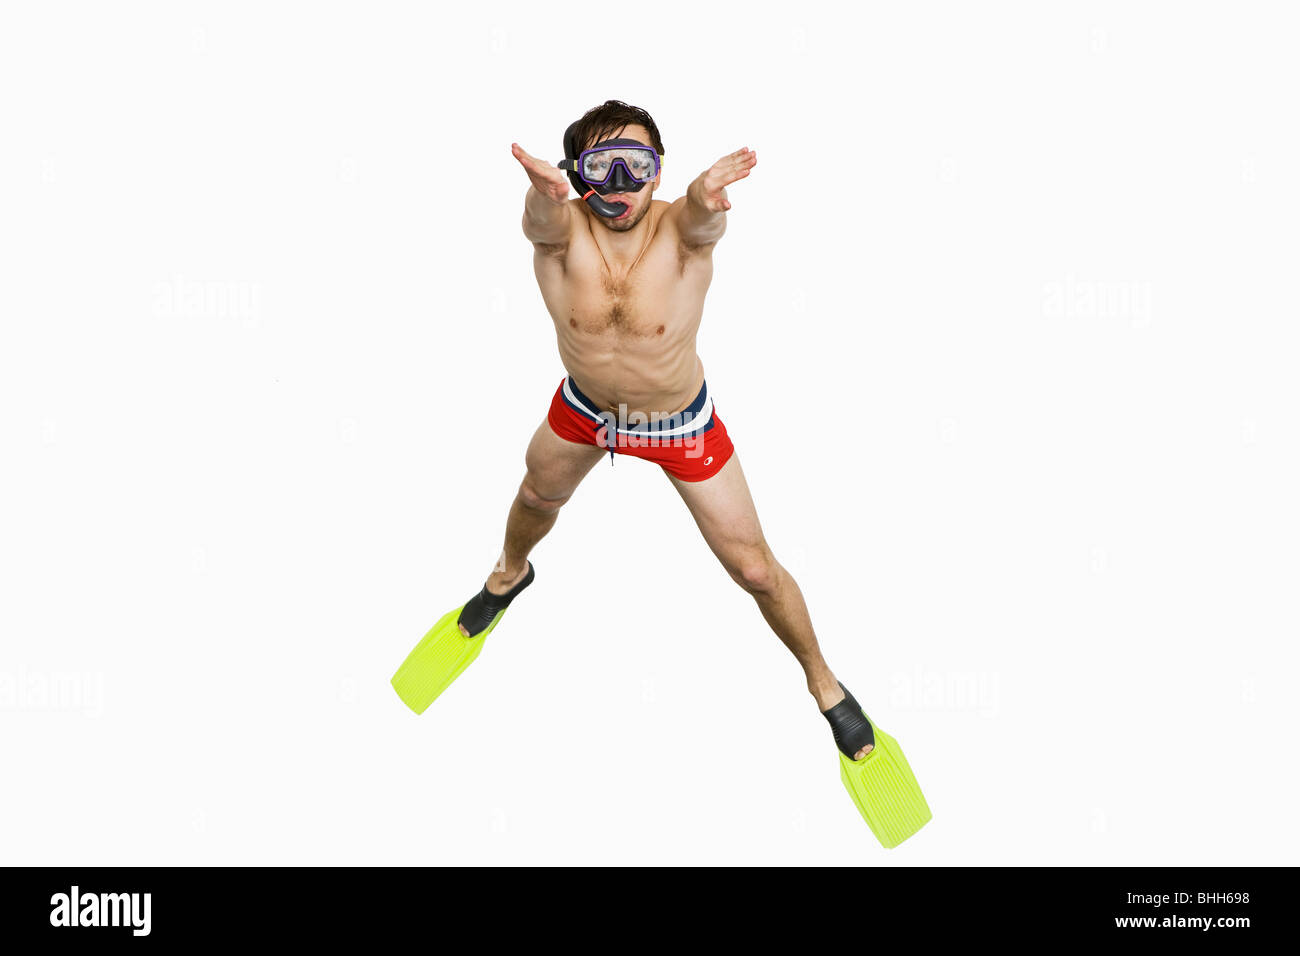 Young man with diving flippers and goggles. - Stock Image